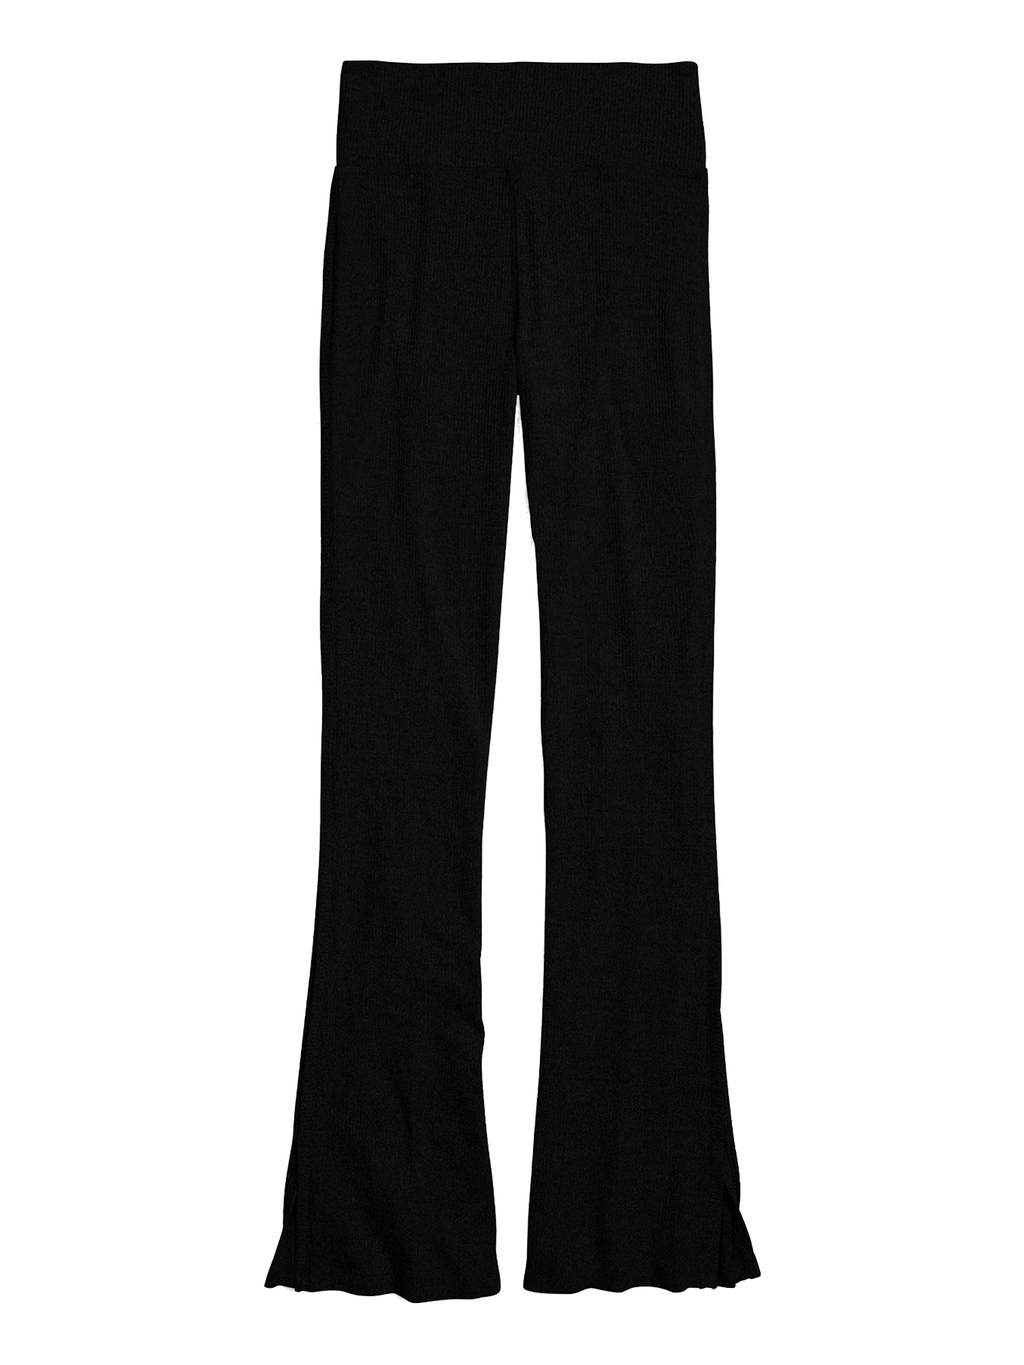 Rag & Bone The Knit Rib Flare Pant